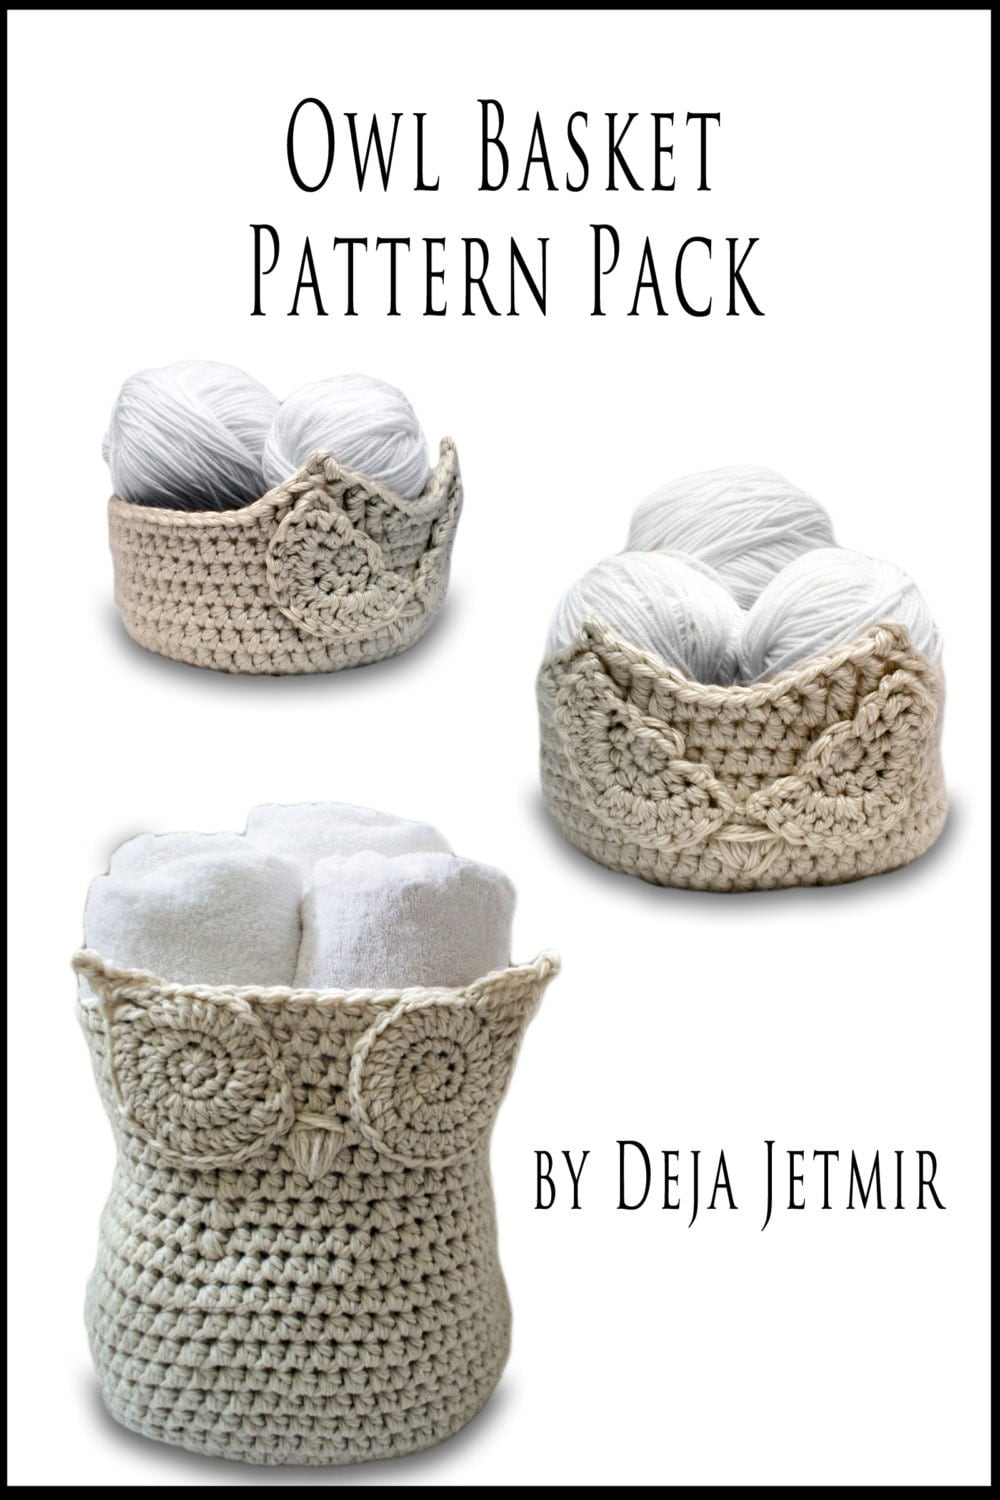 Crochet pattern owl baskets pattern pack crochet pattern from this is a digital file bankloansurffo Images